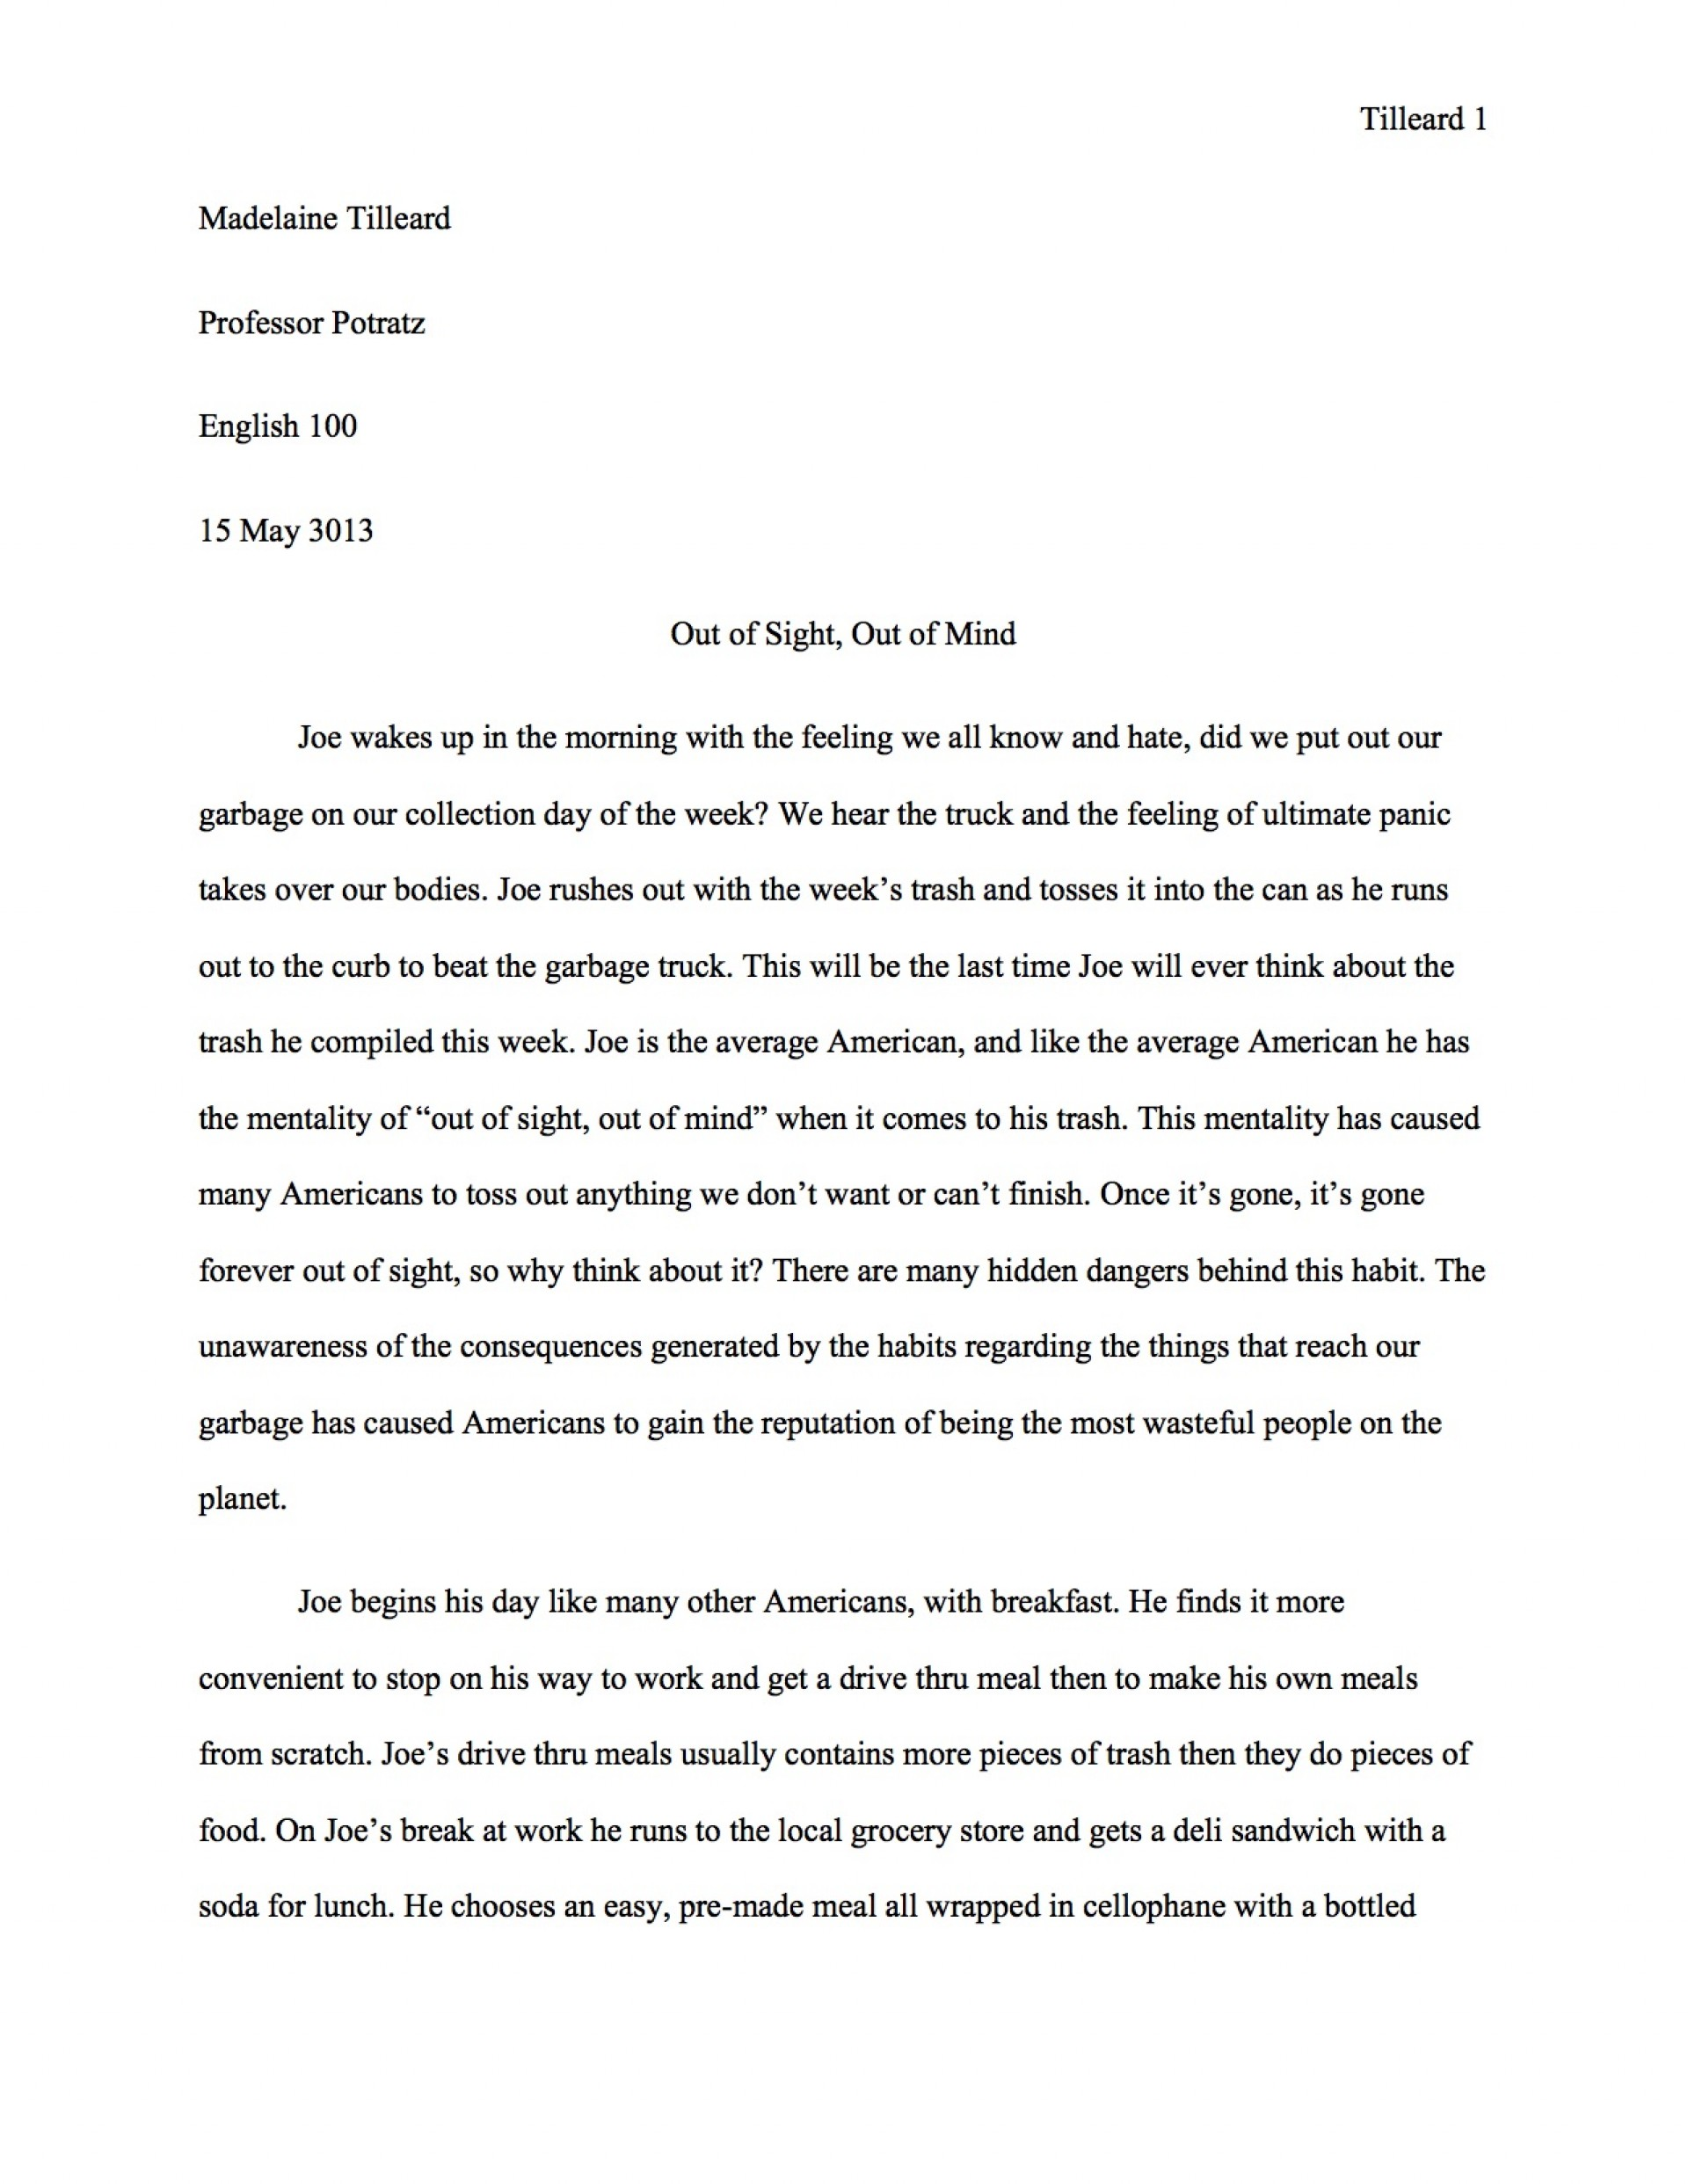 007 How To Write Critique Essay Example Resume Sample Of Critical Book Analysis Fearsome Evaluation 1920